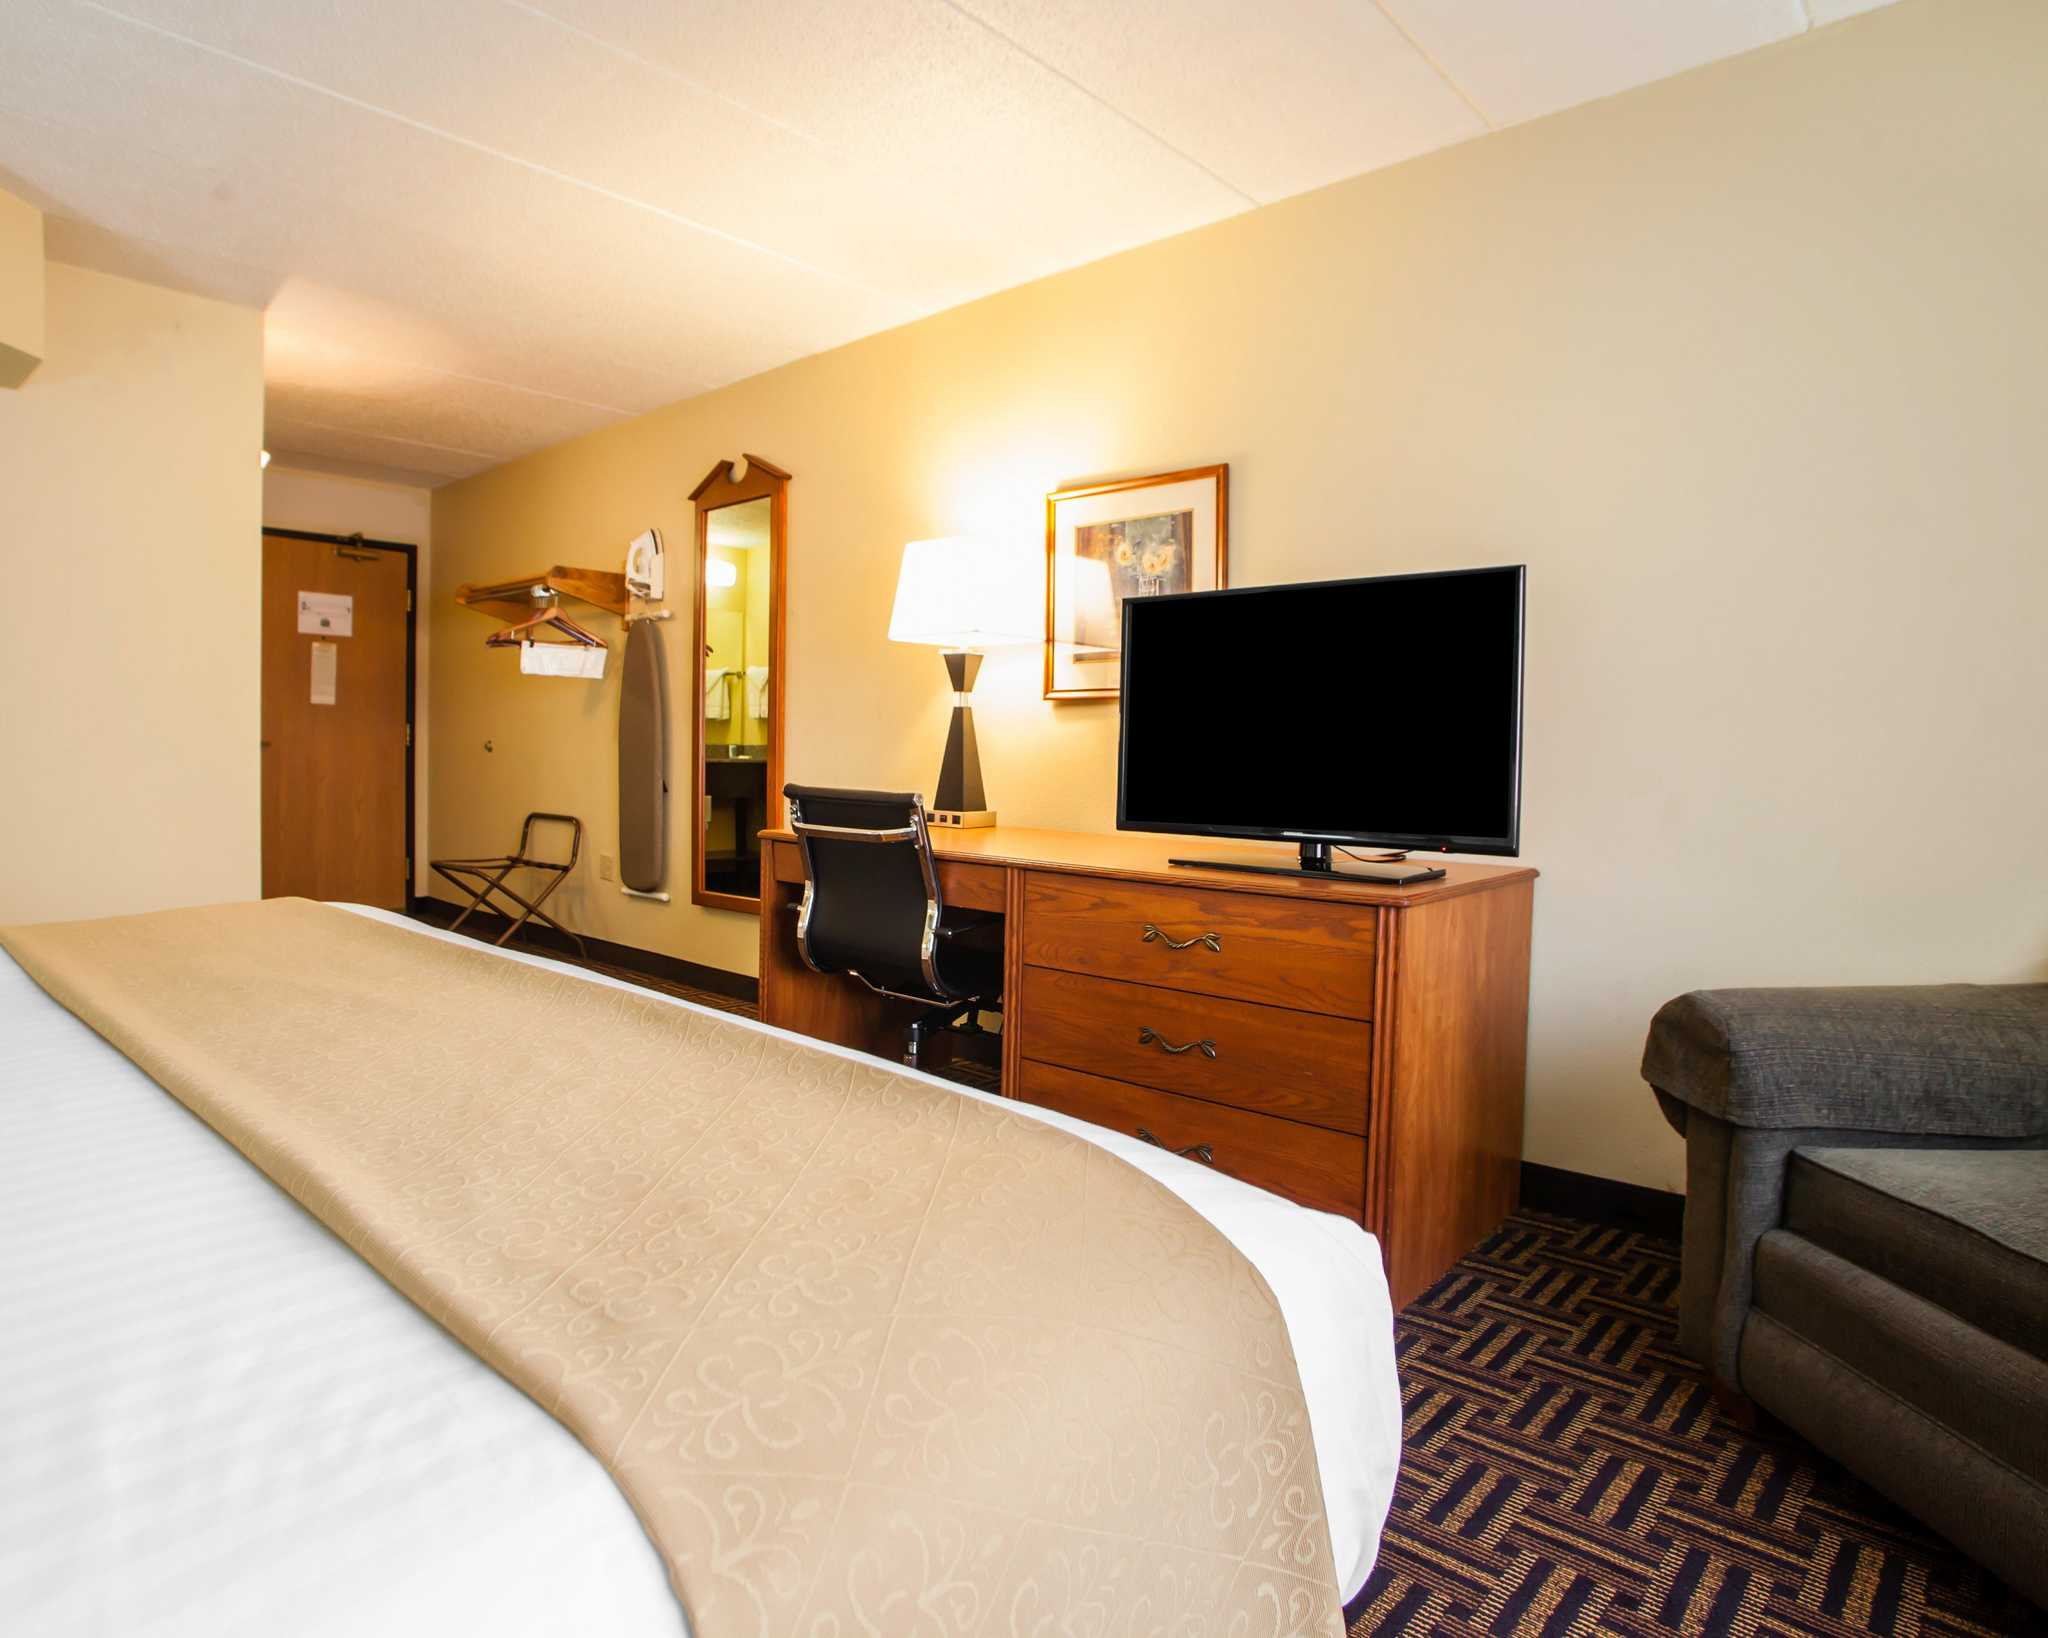 Quality Inn image 18